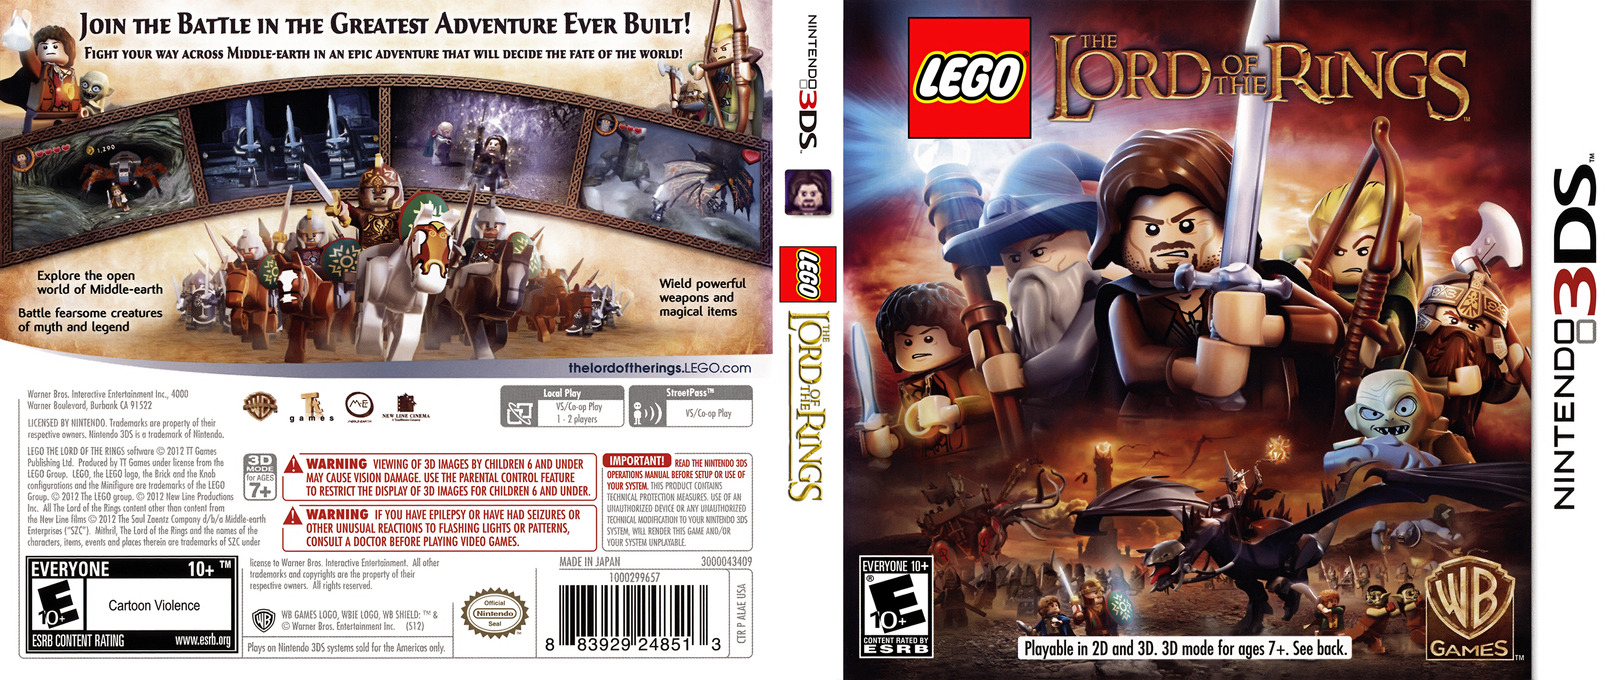 Lord Of The Rings Ds Games